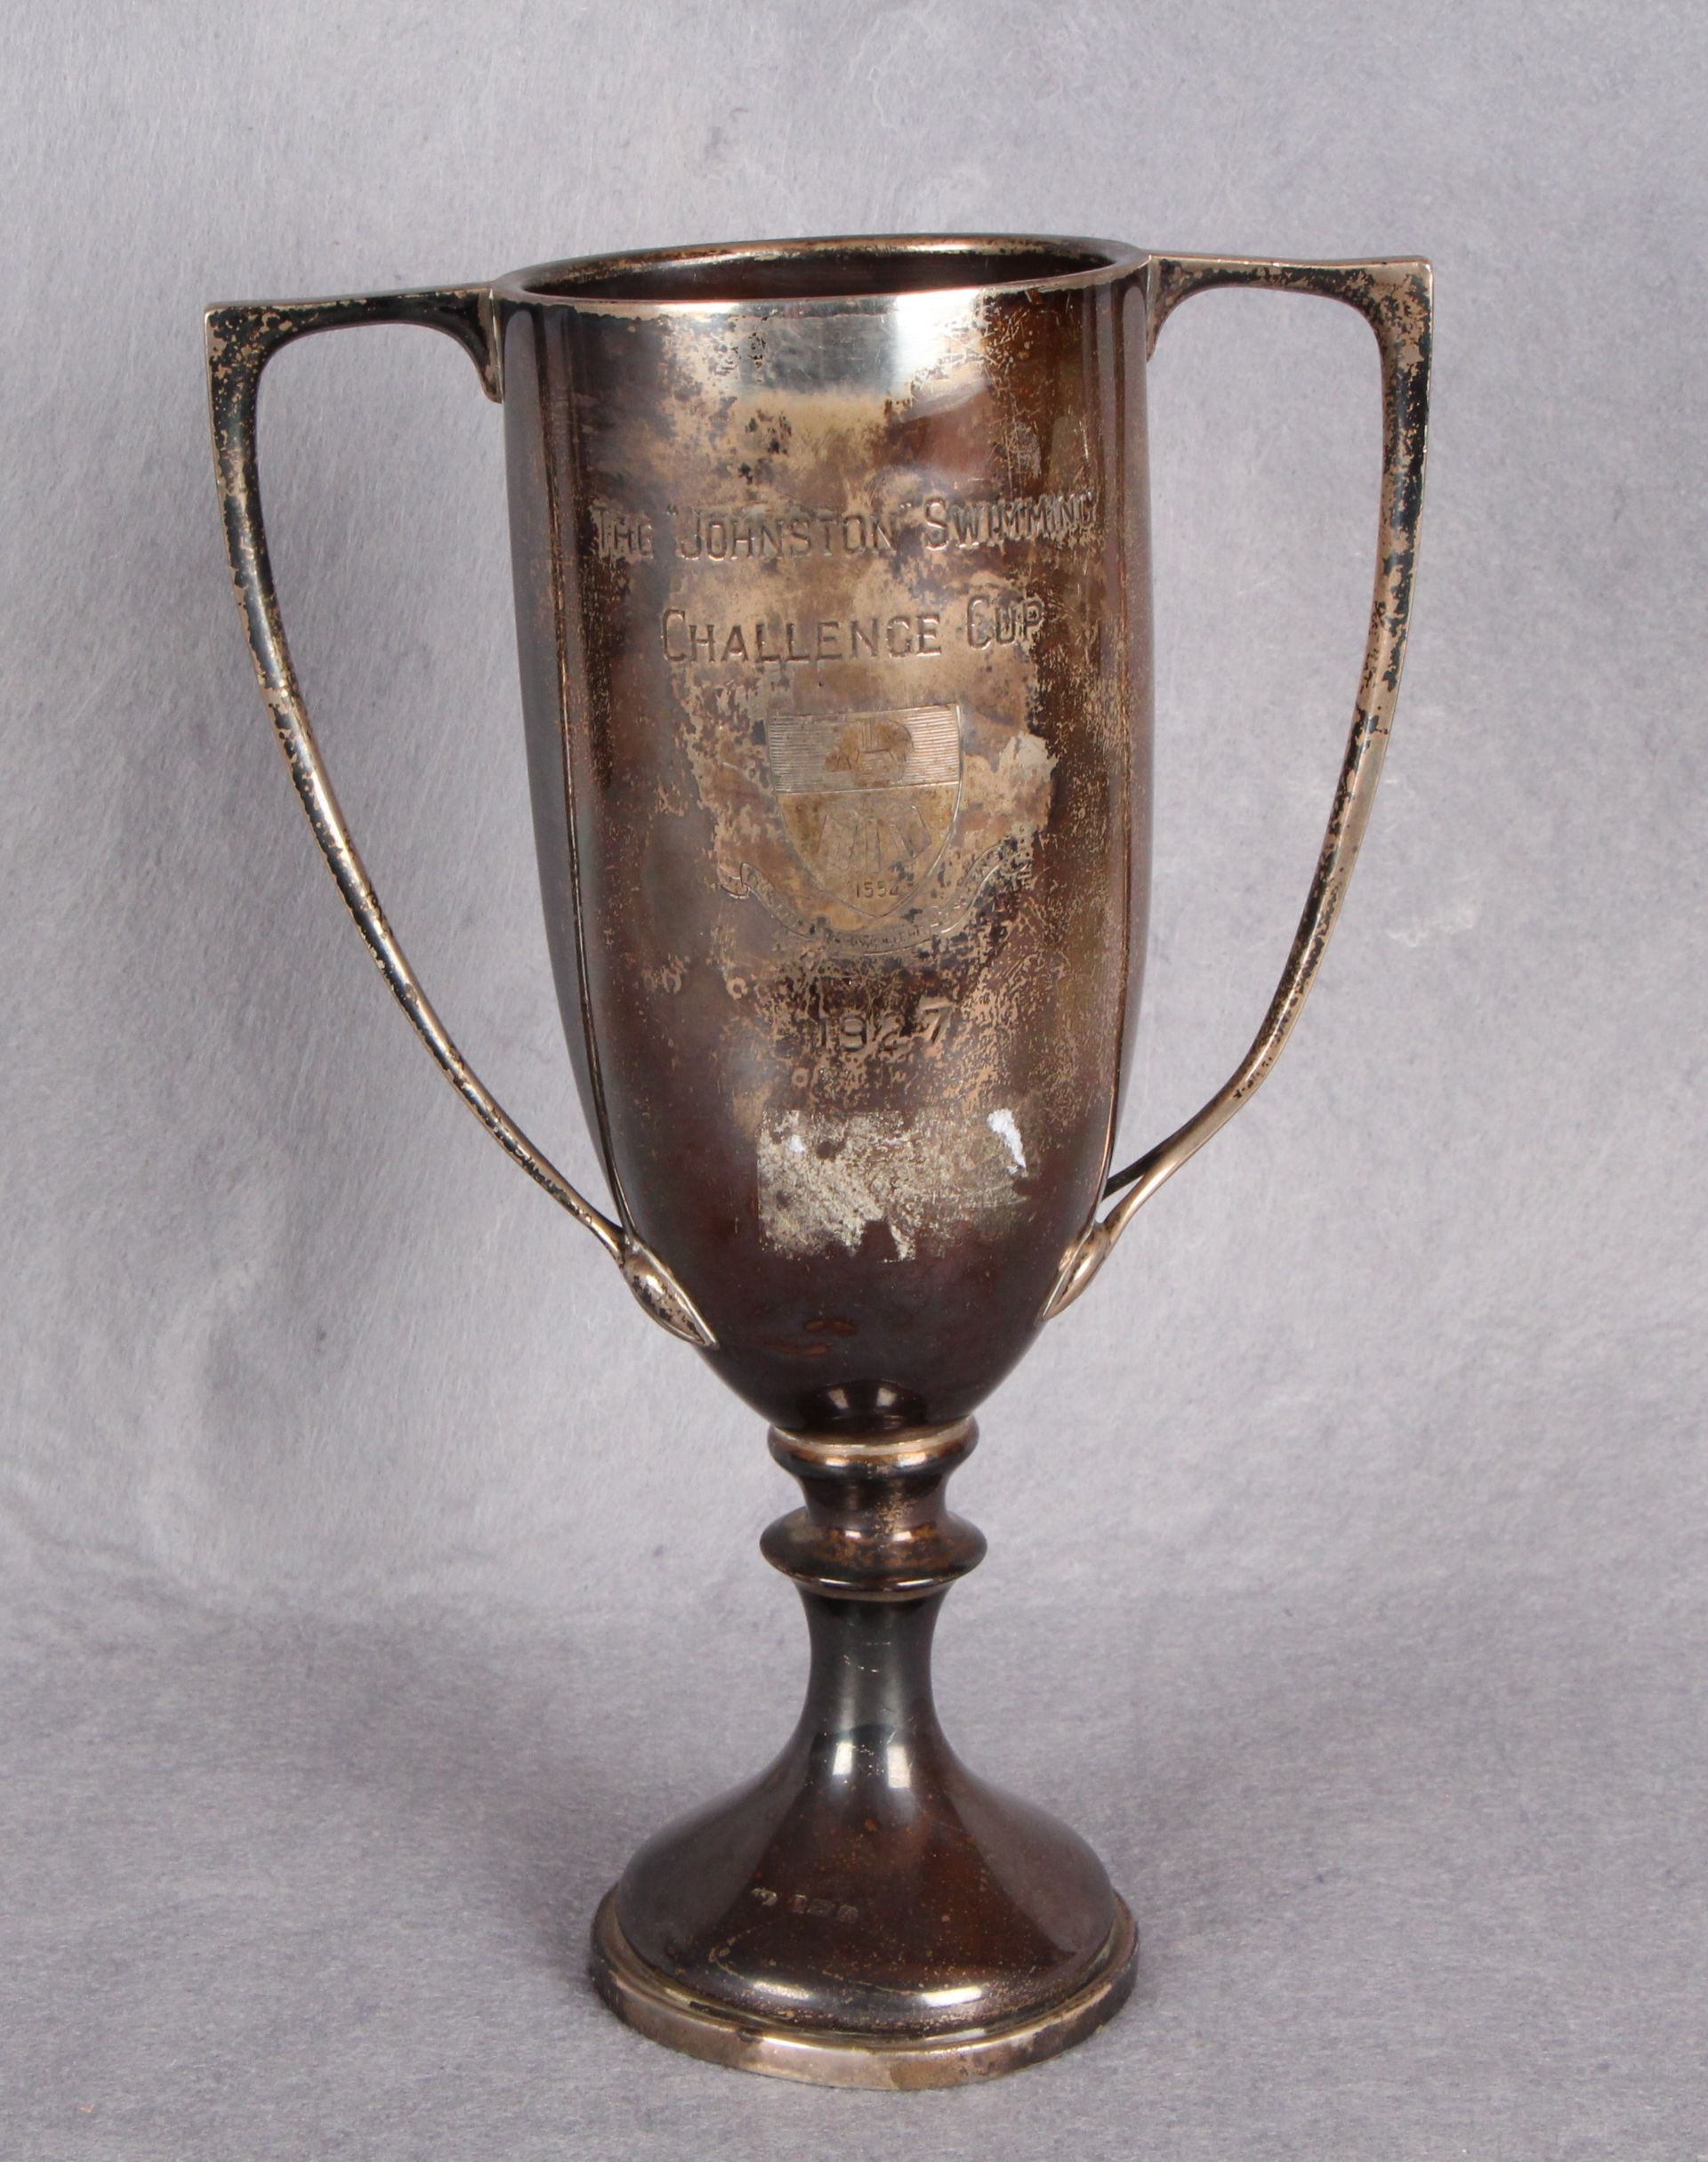 """Lot 31 - A two-handled circular section sports trophy """"The Johnston Swimming Challenge Cup"""","""